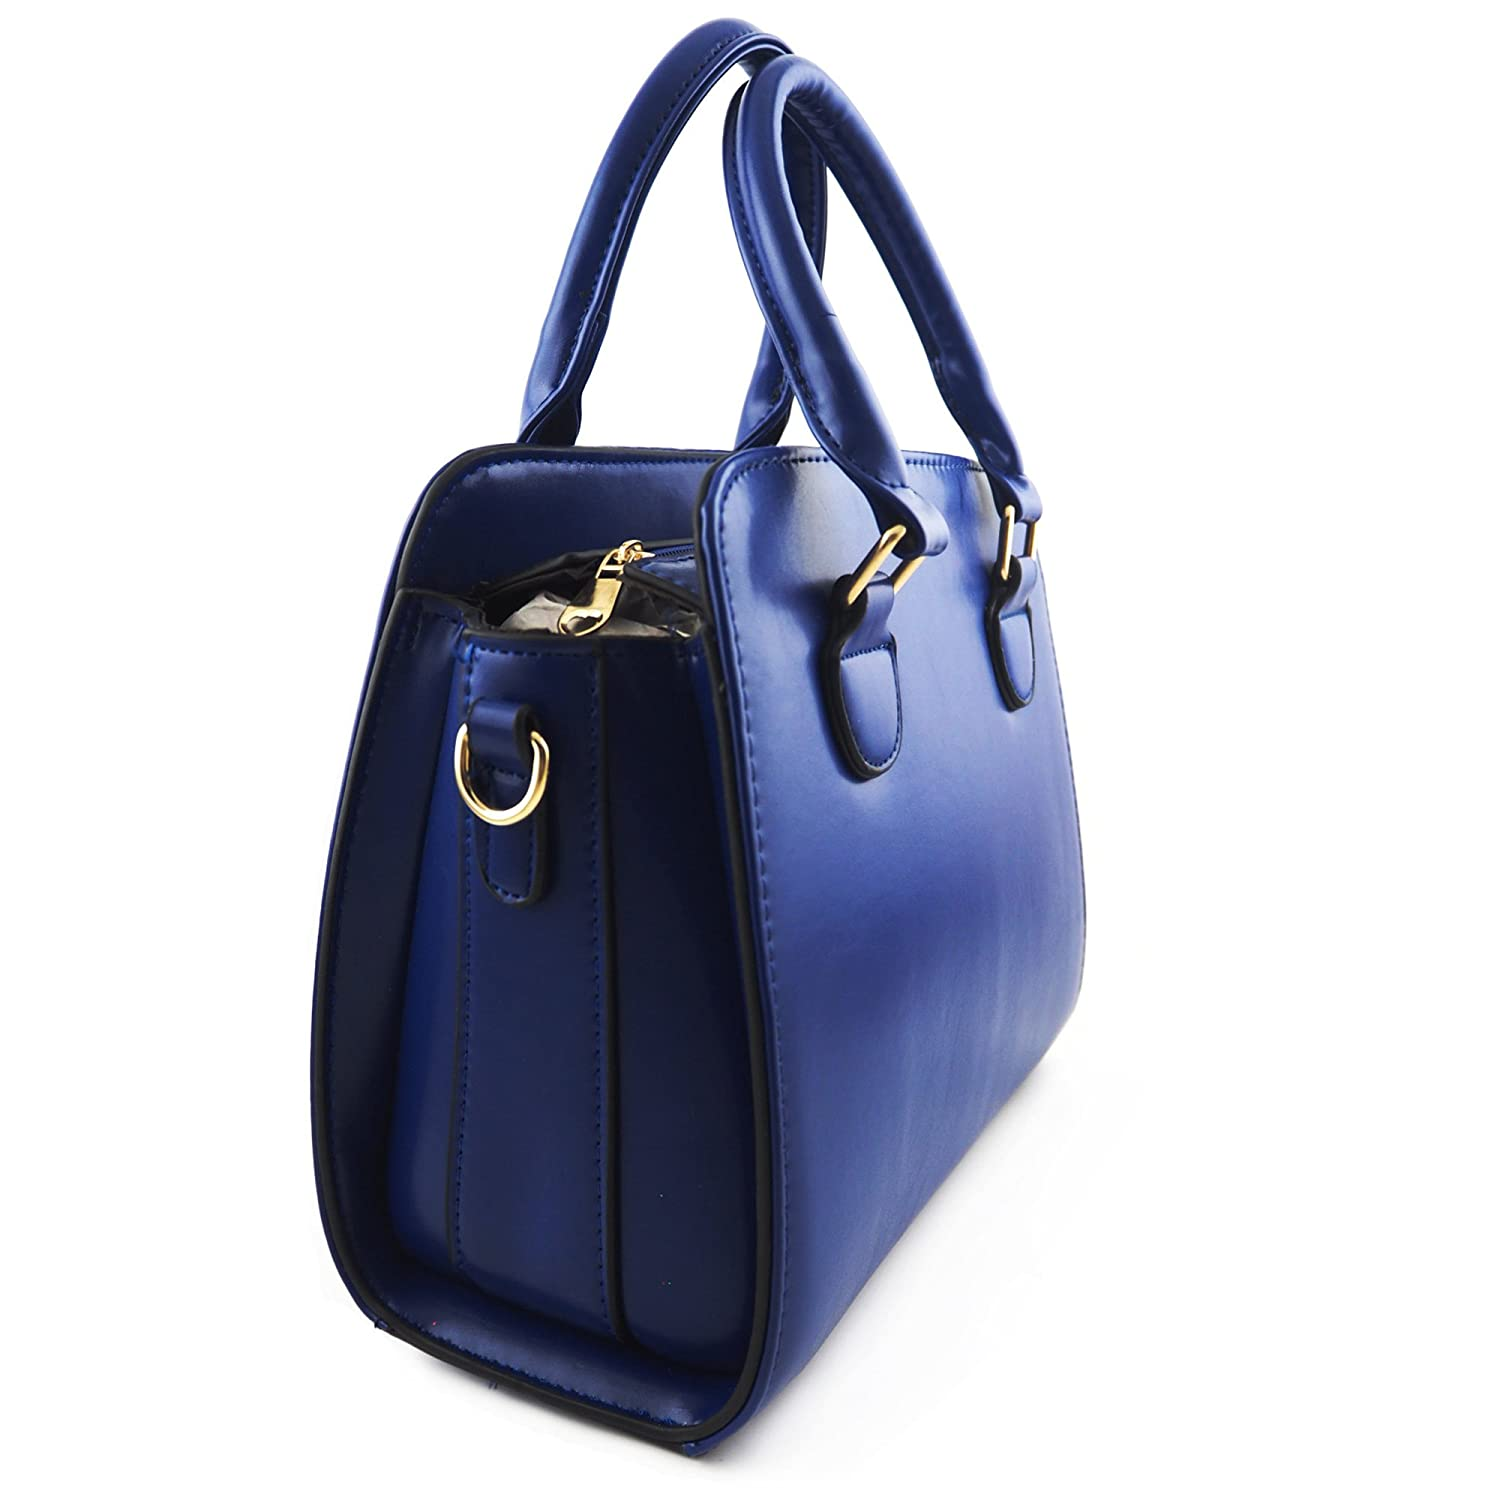 Amazon.com   Minch Women PU Leather Designer Tote Handbags Shoulder Bags  for Work on Clearance (Blue)   Sports   Outdoors def74bae04